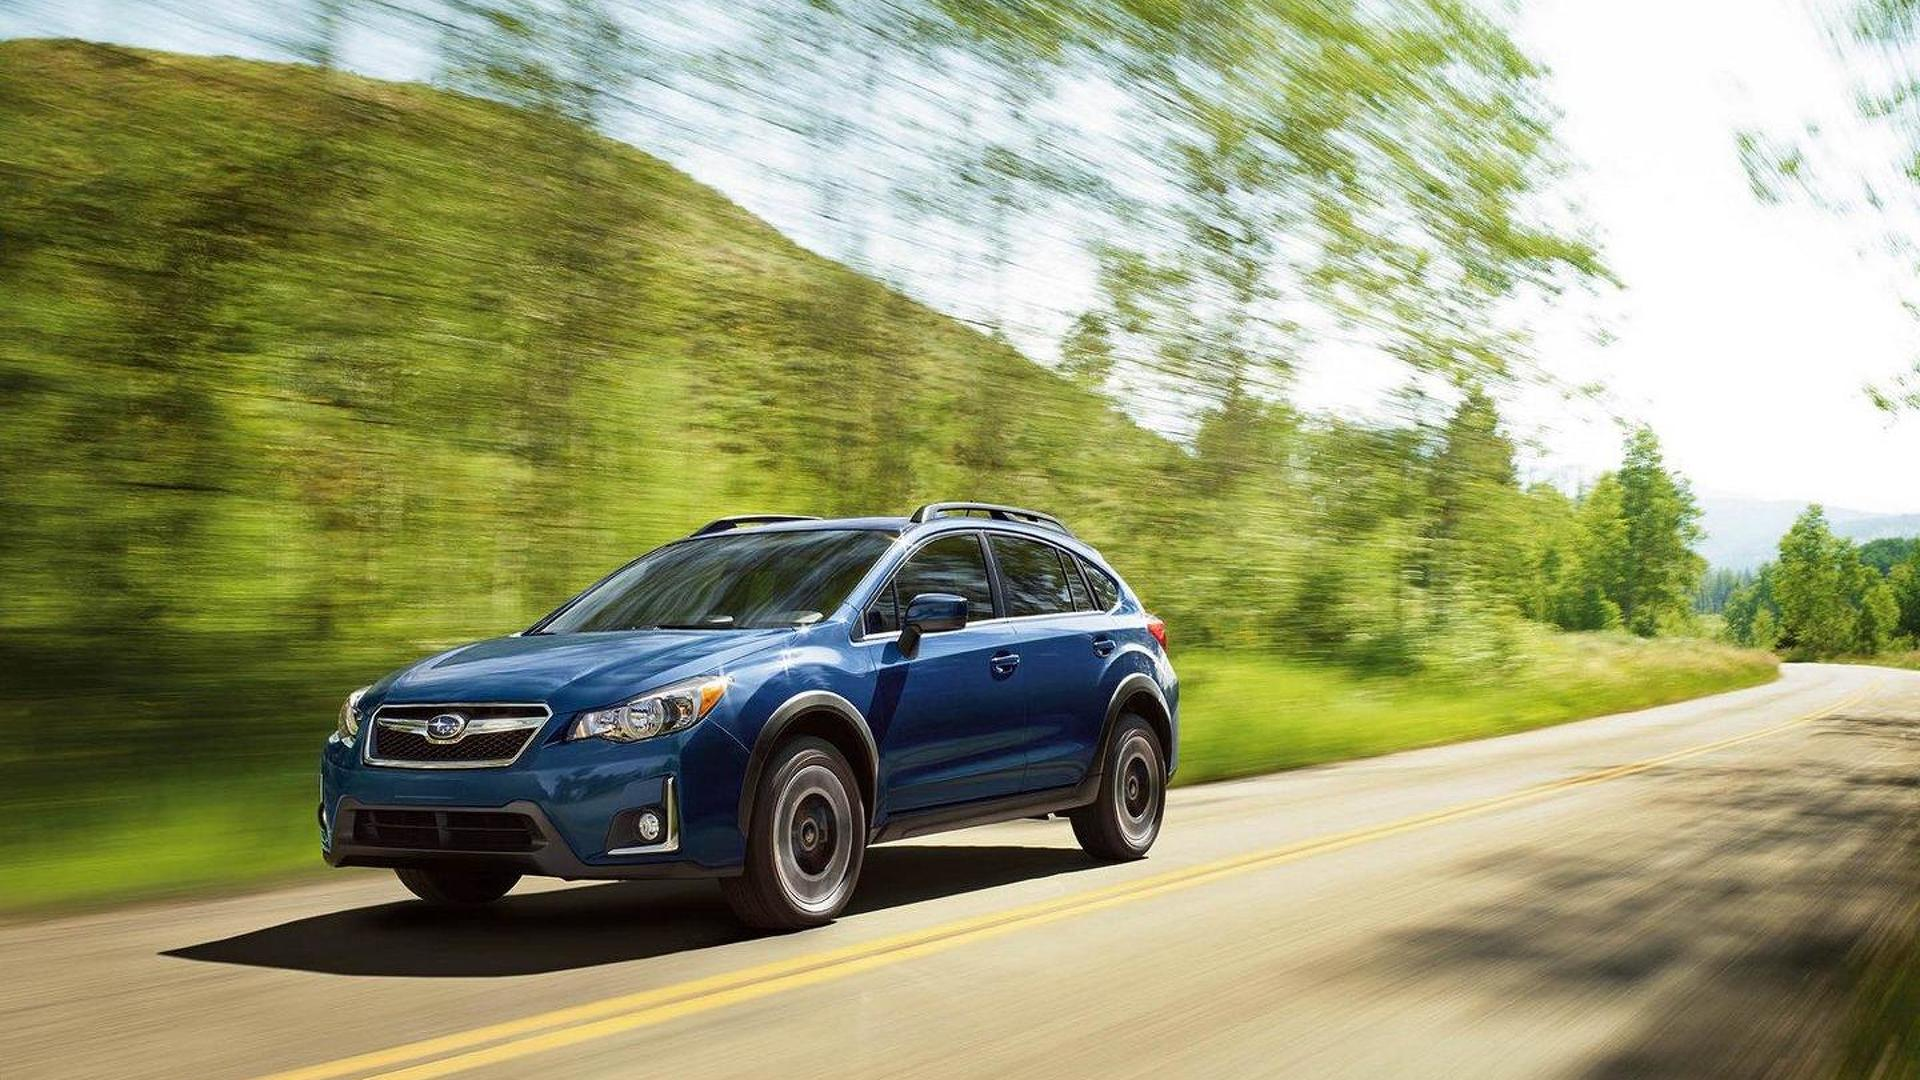 2016 Subaru Crosstrek facelift revealed